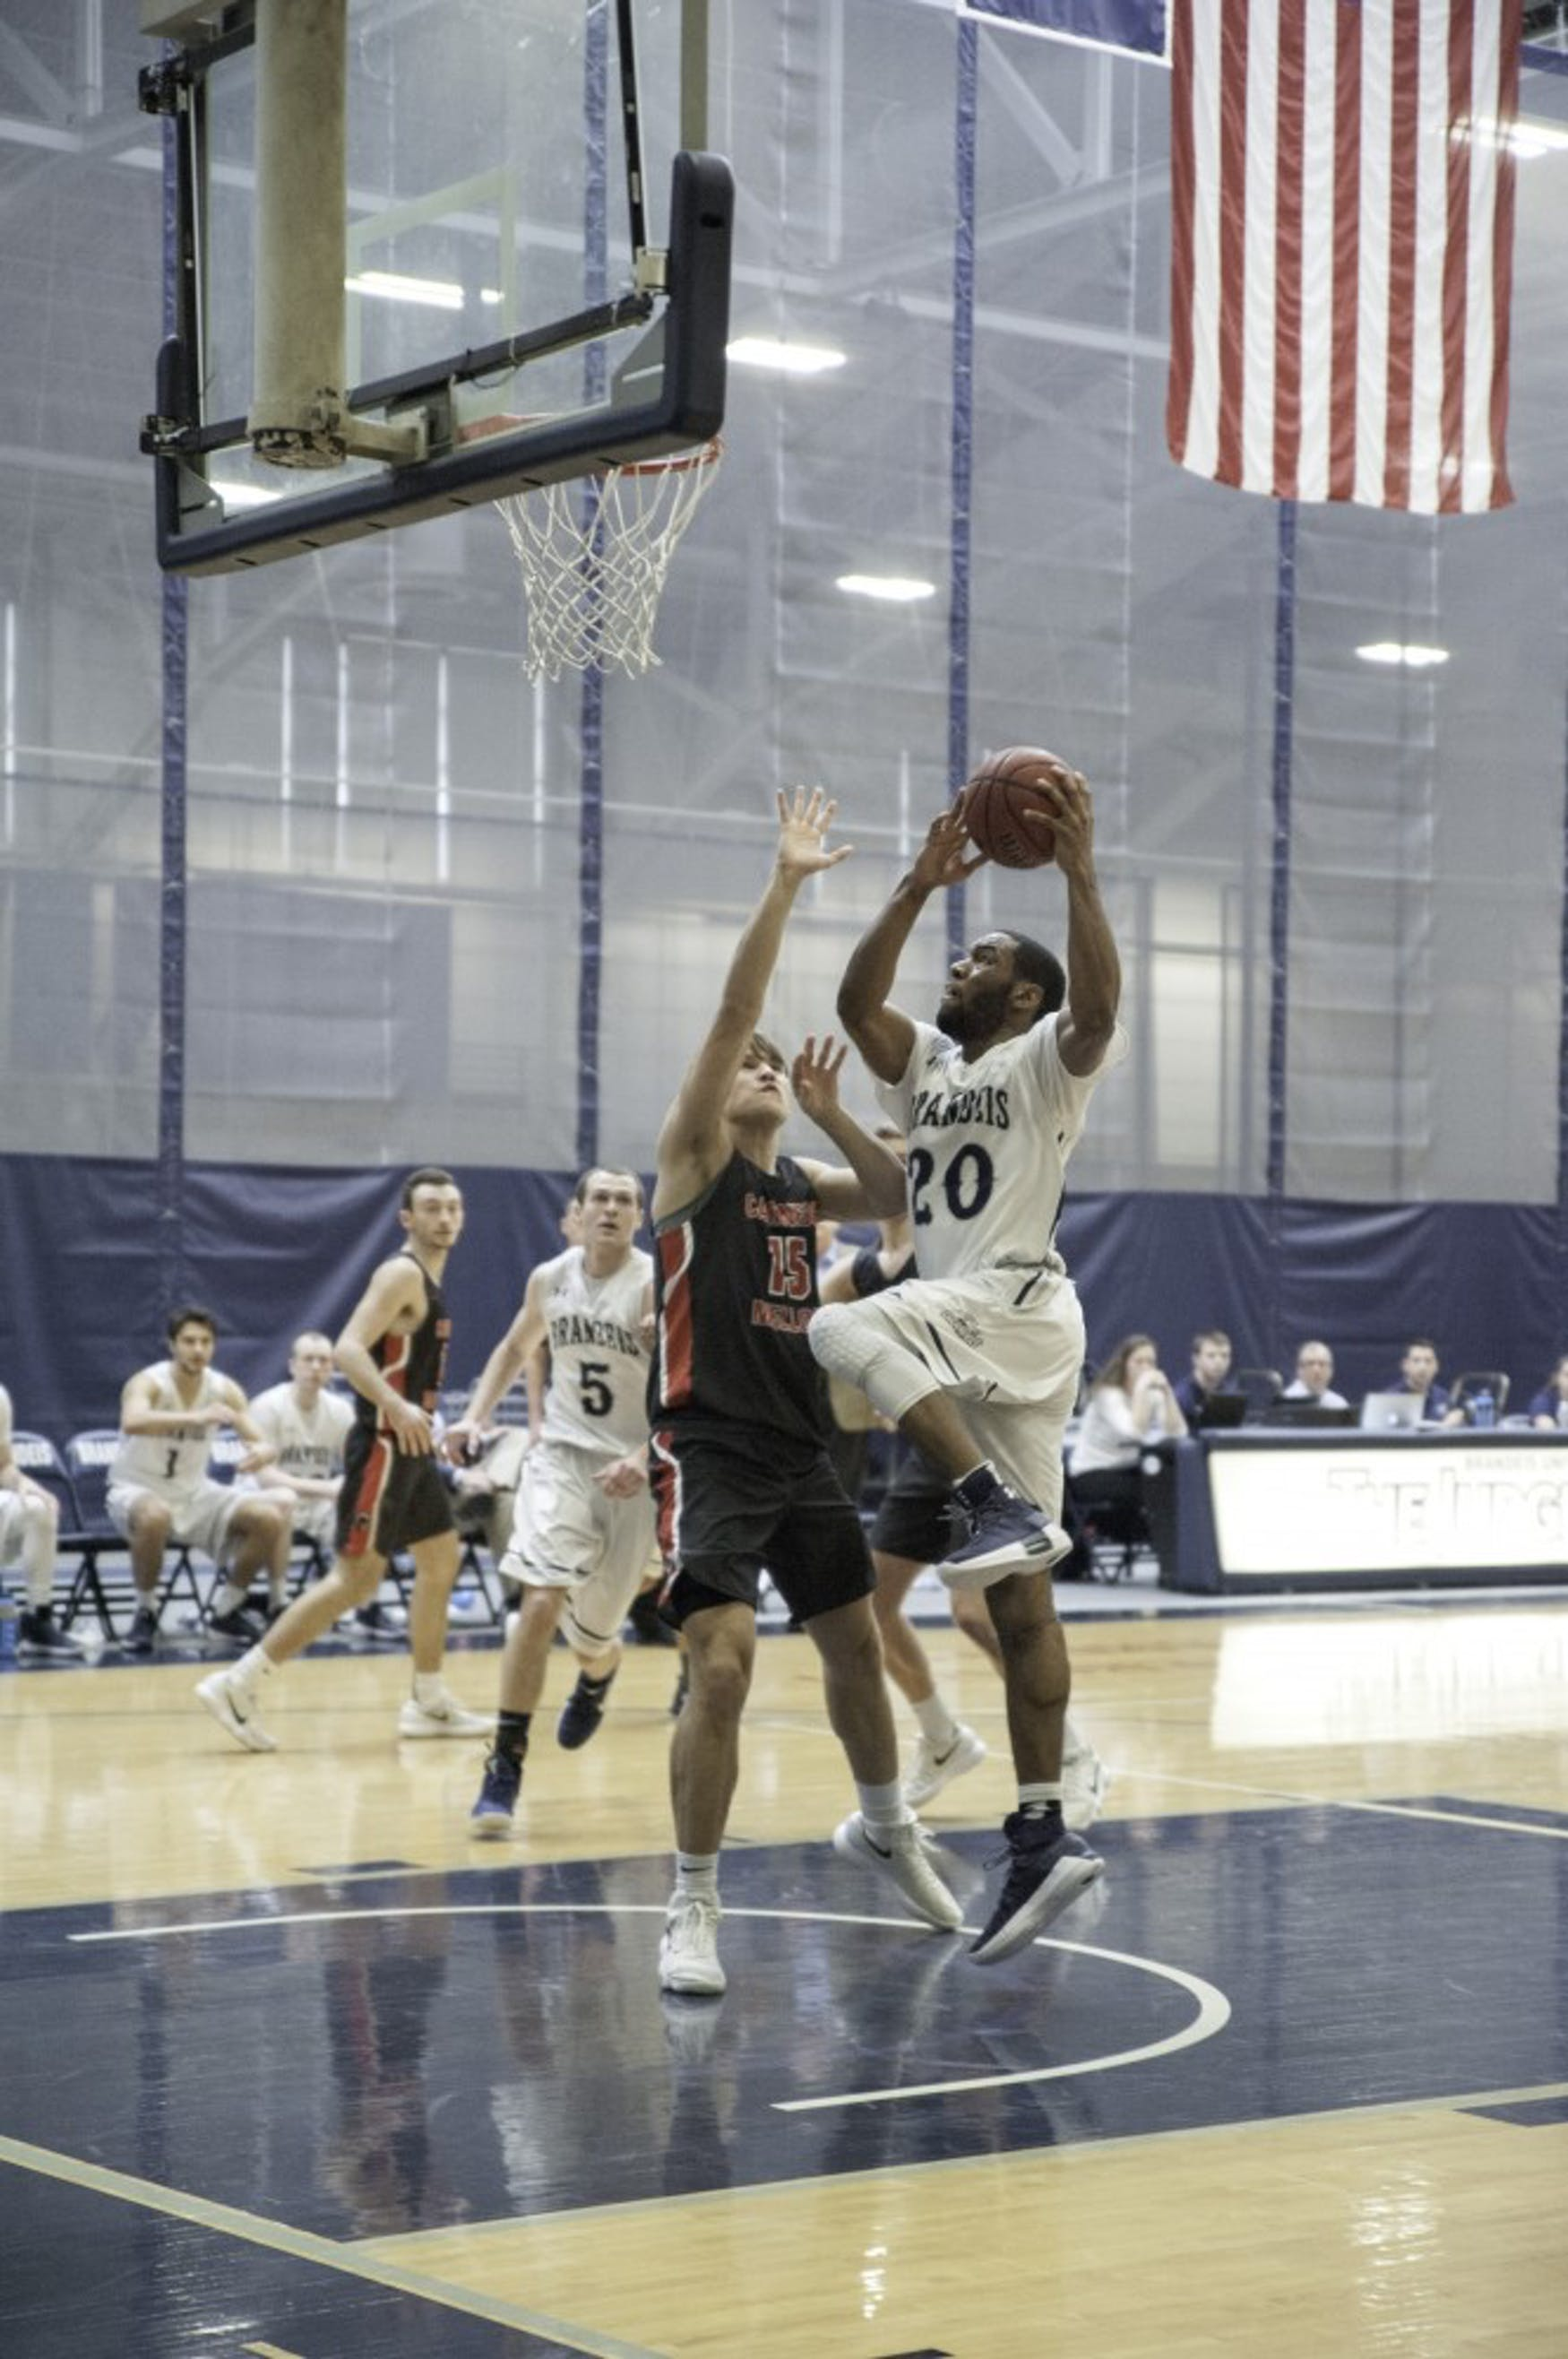 basketball-m-vs-carnegie-mellon-1-28-18-knd0255